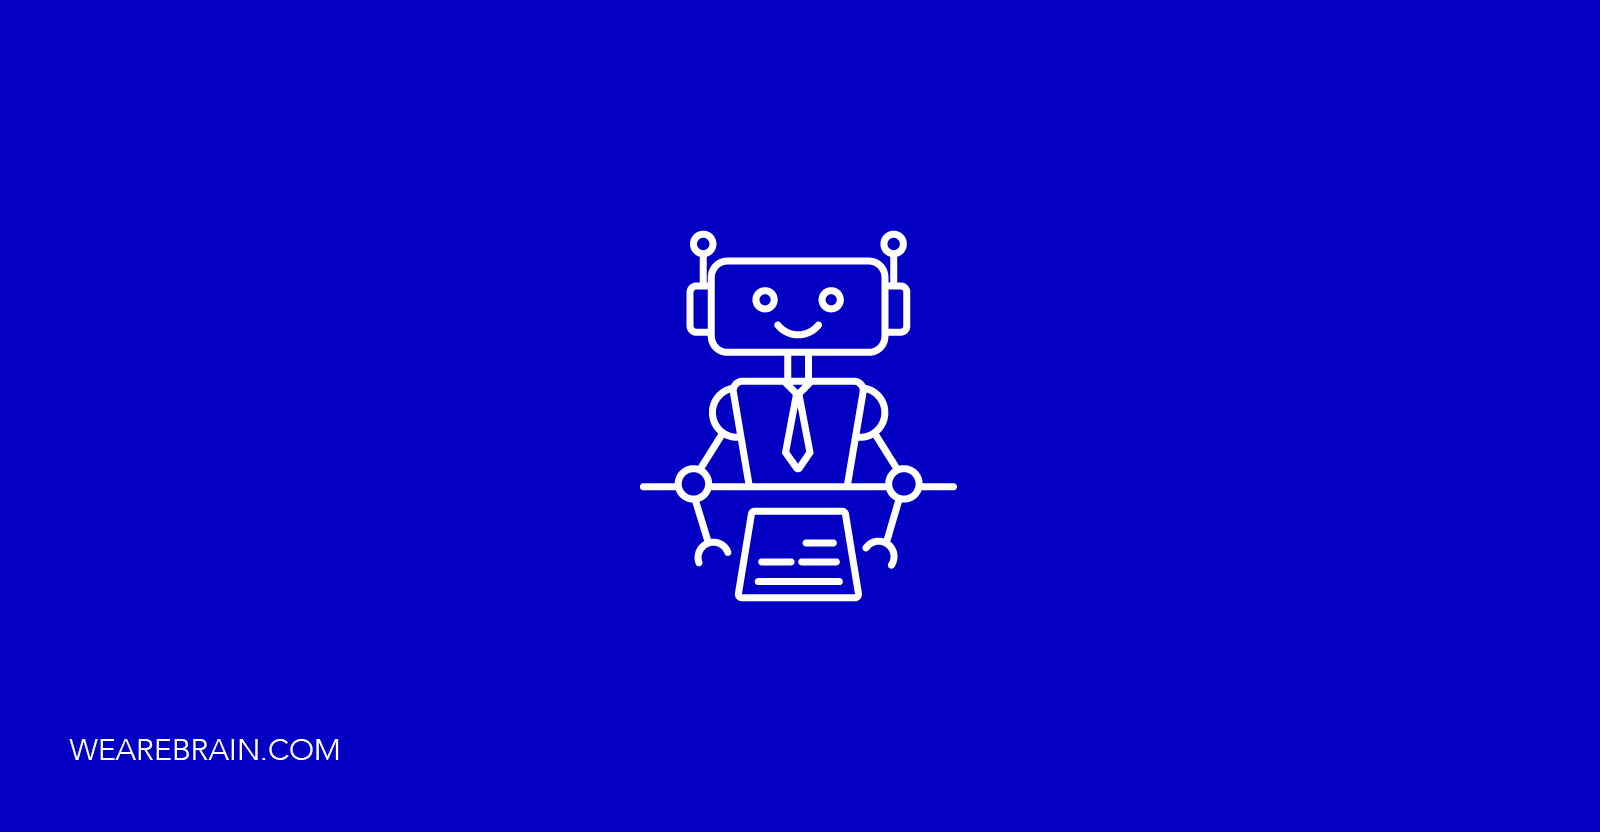 icon of a robot wearing a suit and tie